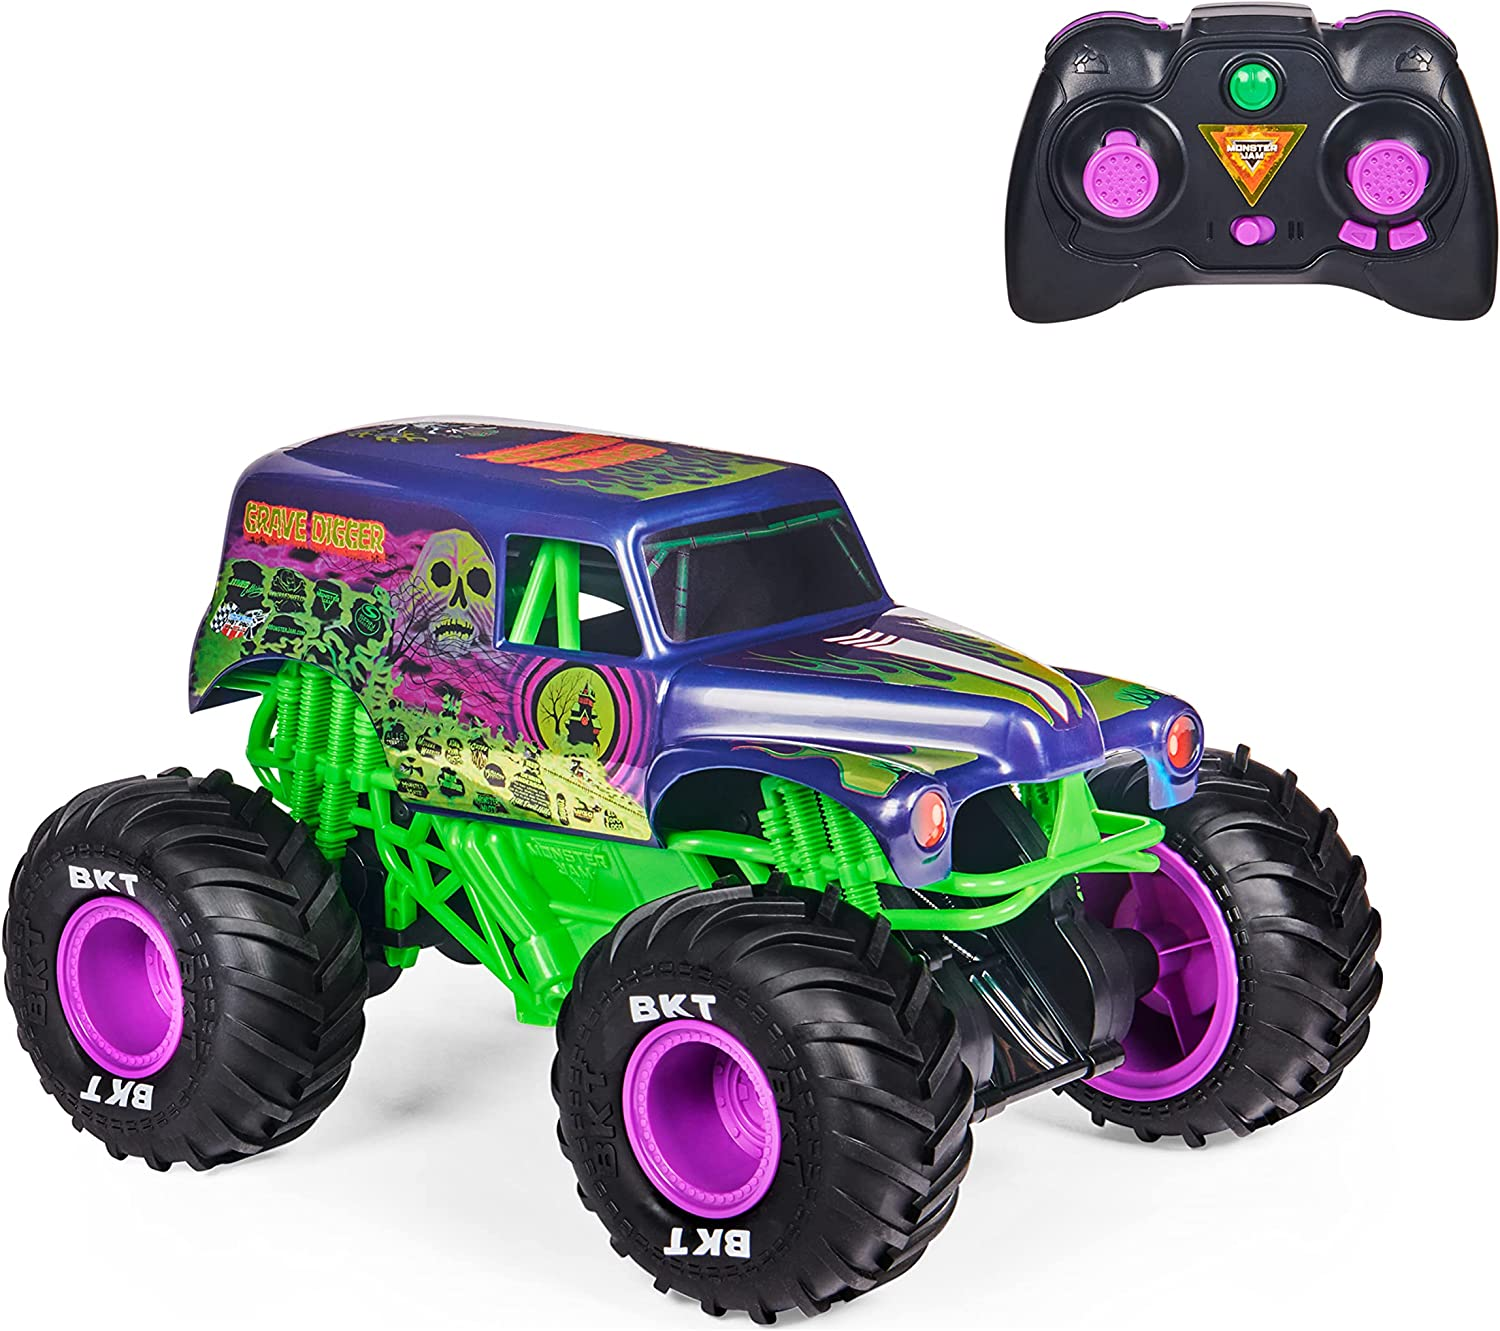 Monster Jam Grave Digger Freestyle Force - The Truck and the Controller